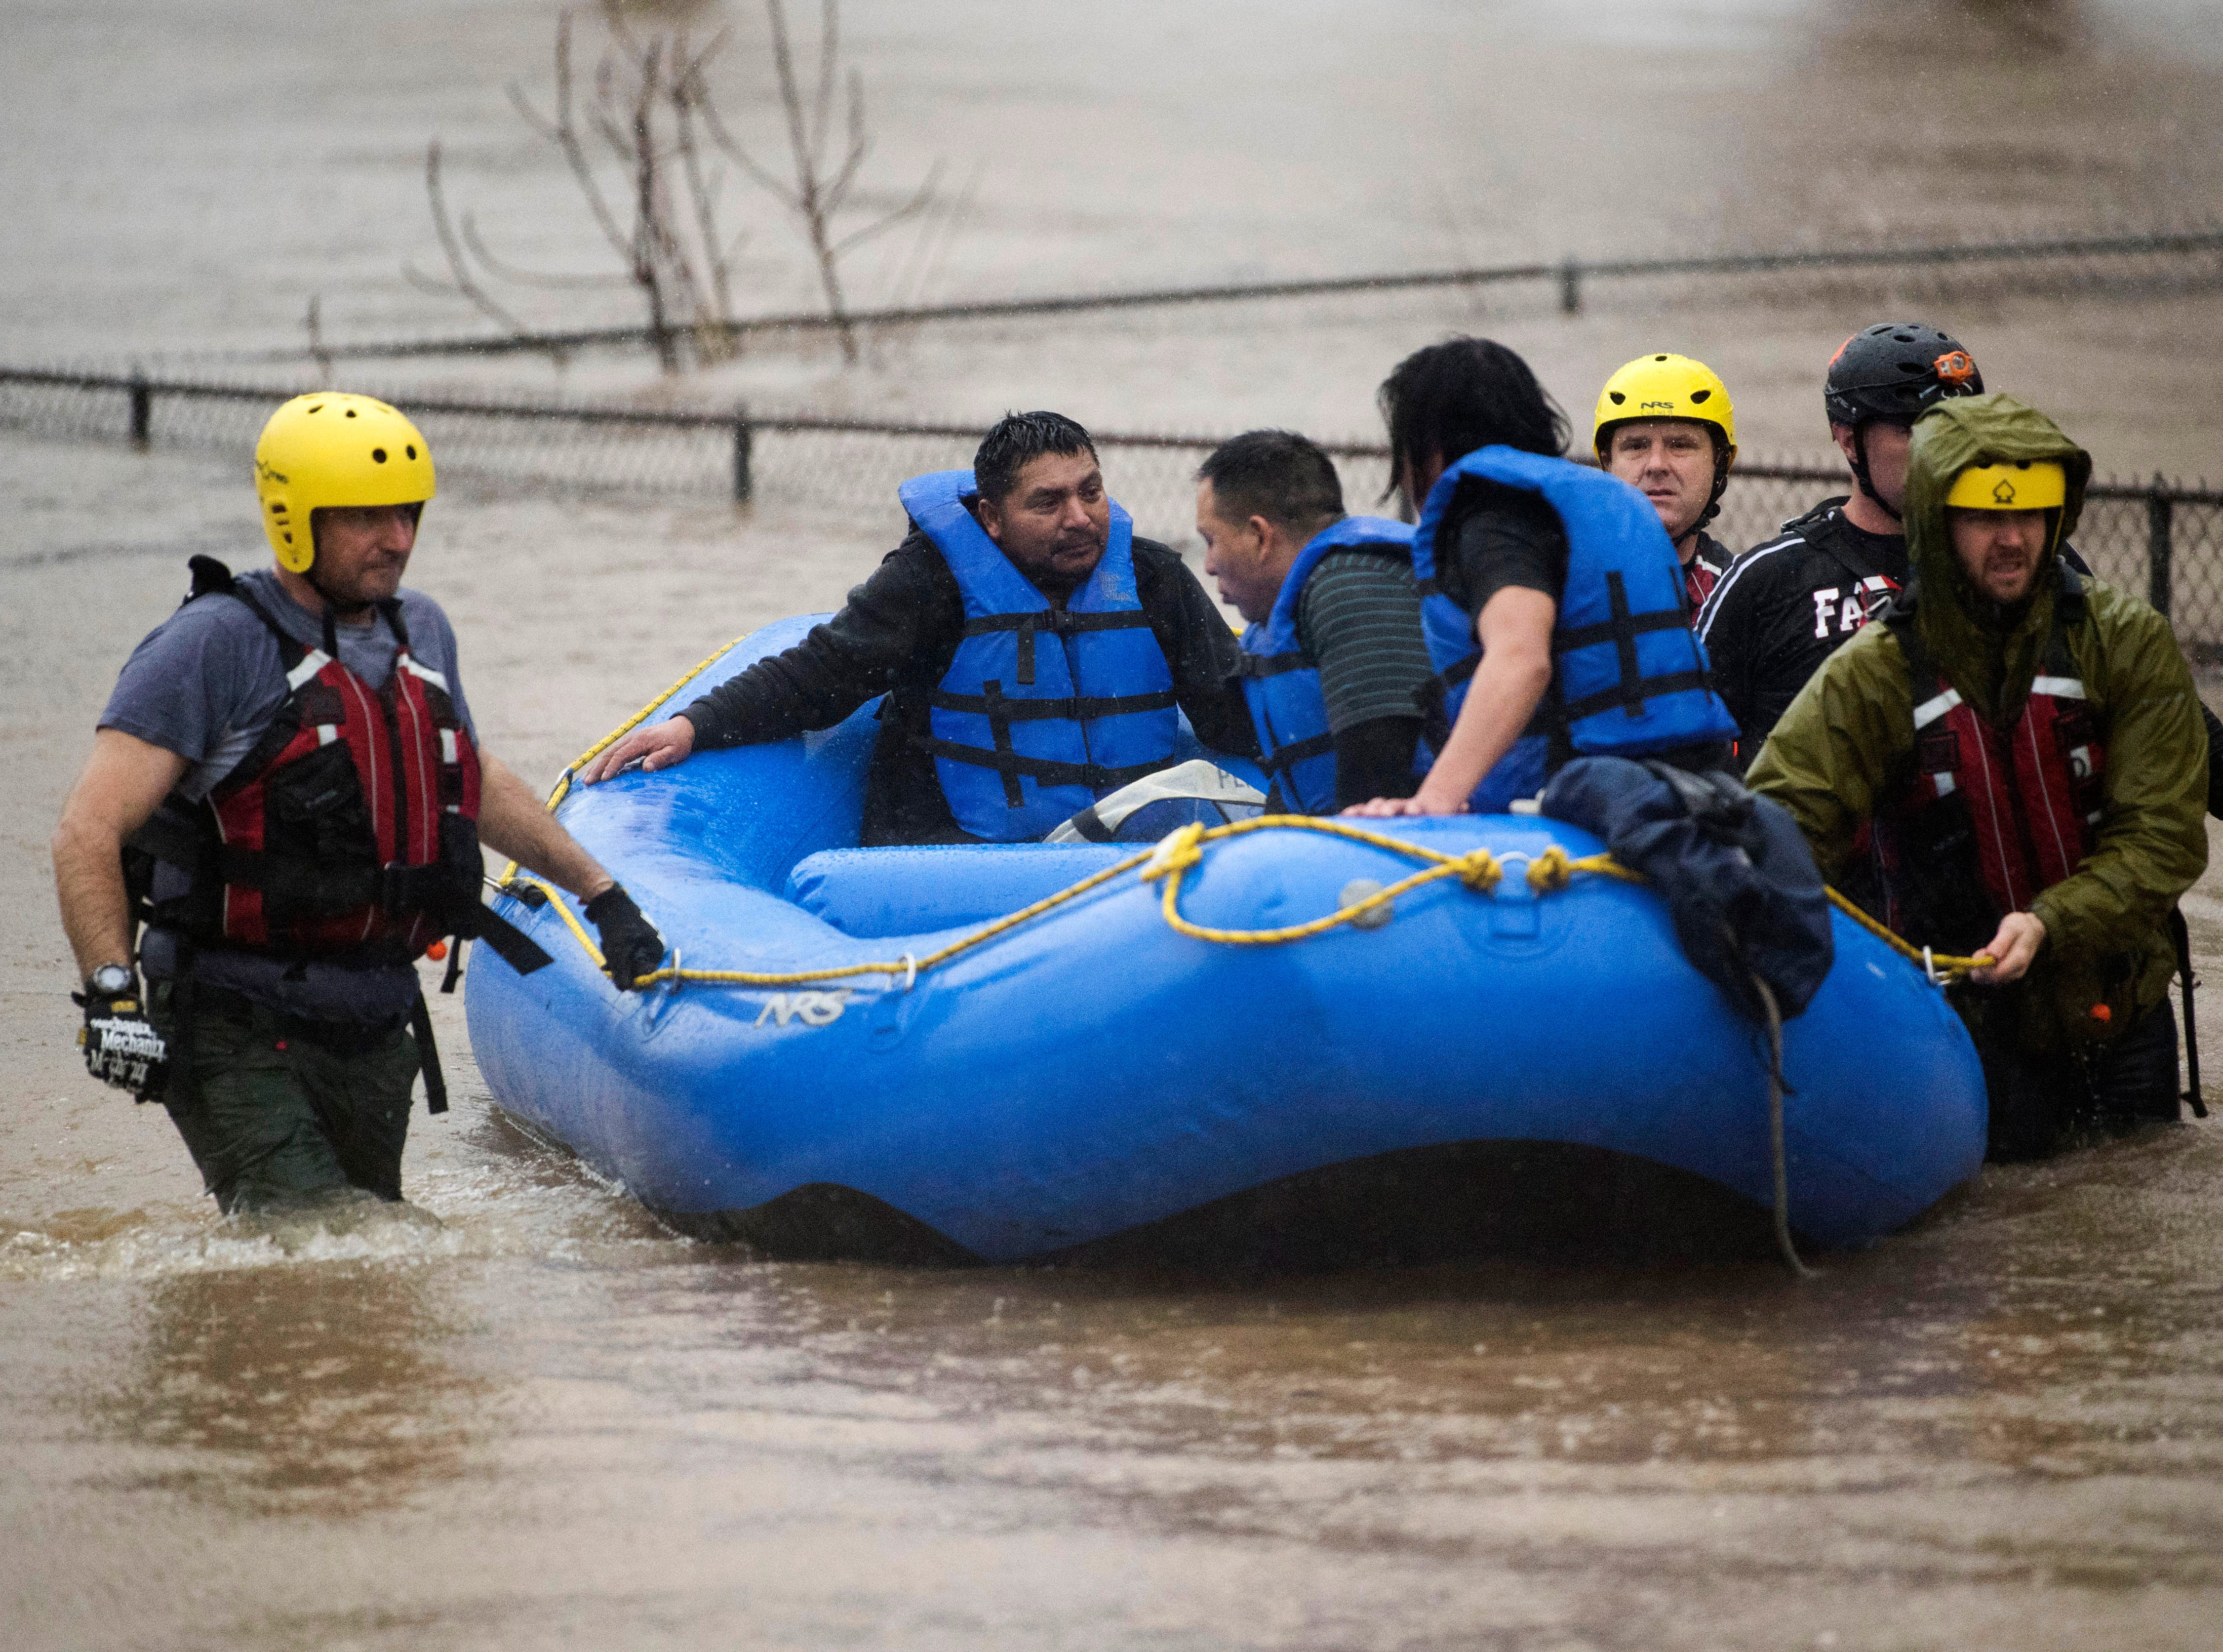 Three men are rescued by the Knoxville Fire Department from a stranded car off of 6th Street in Knoxville Saturday, Feb. 23, 2019.